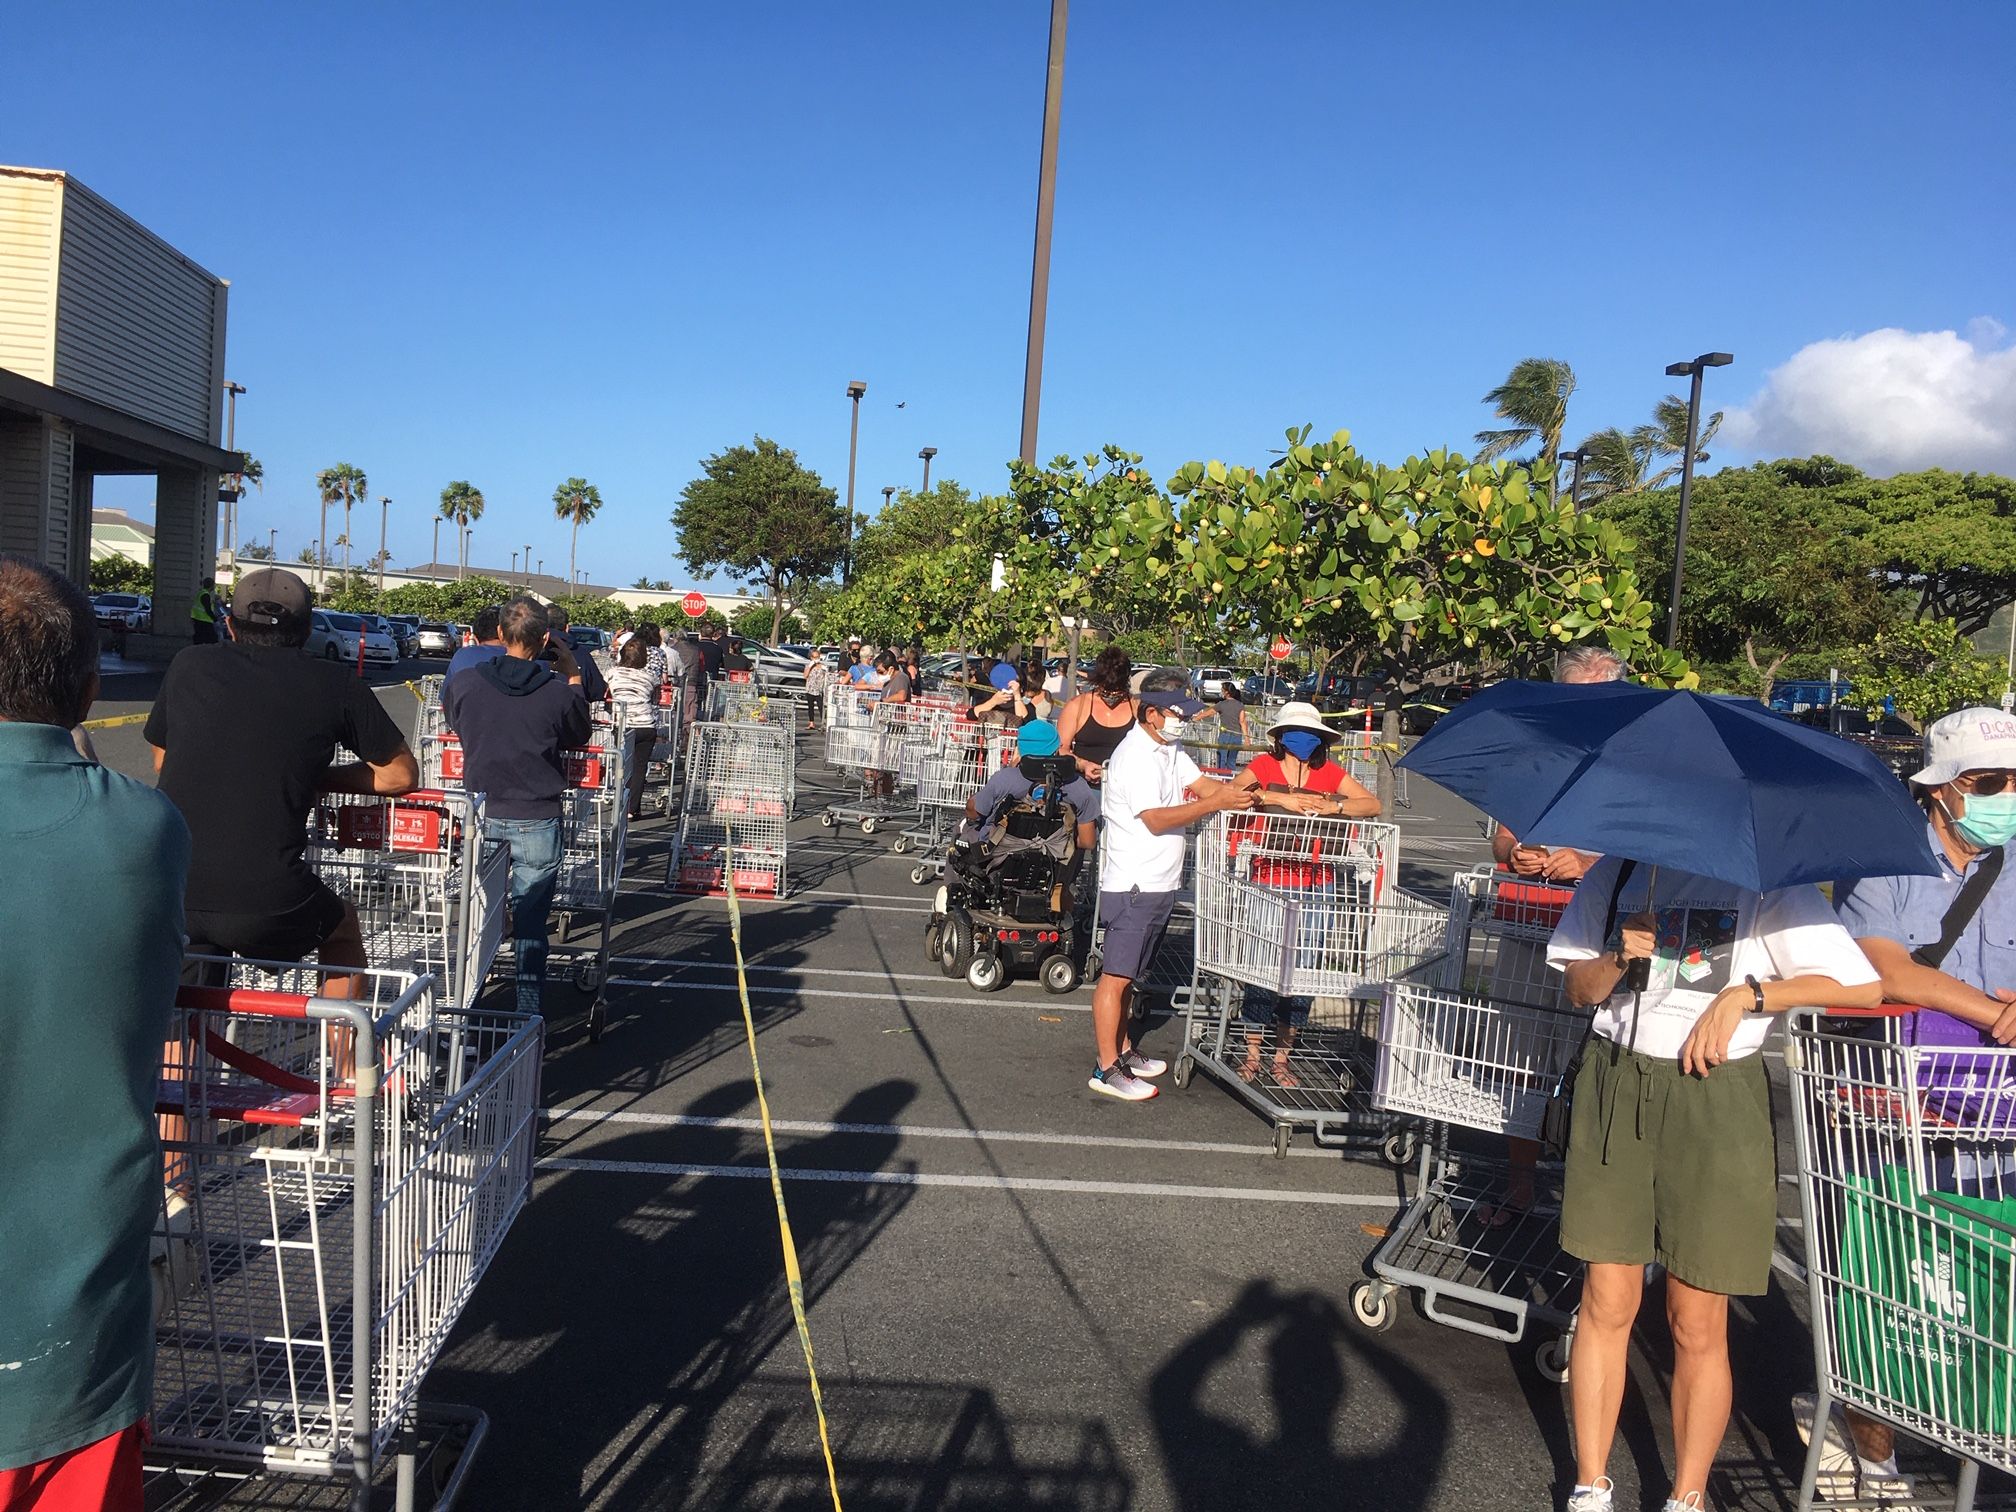 Shoppers in line outside of Costco